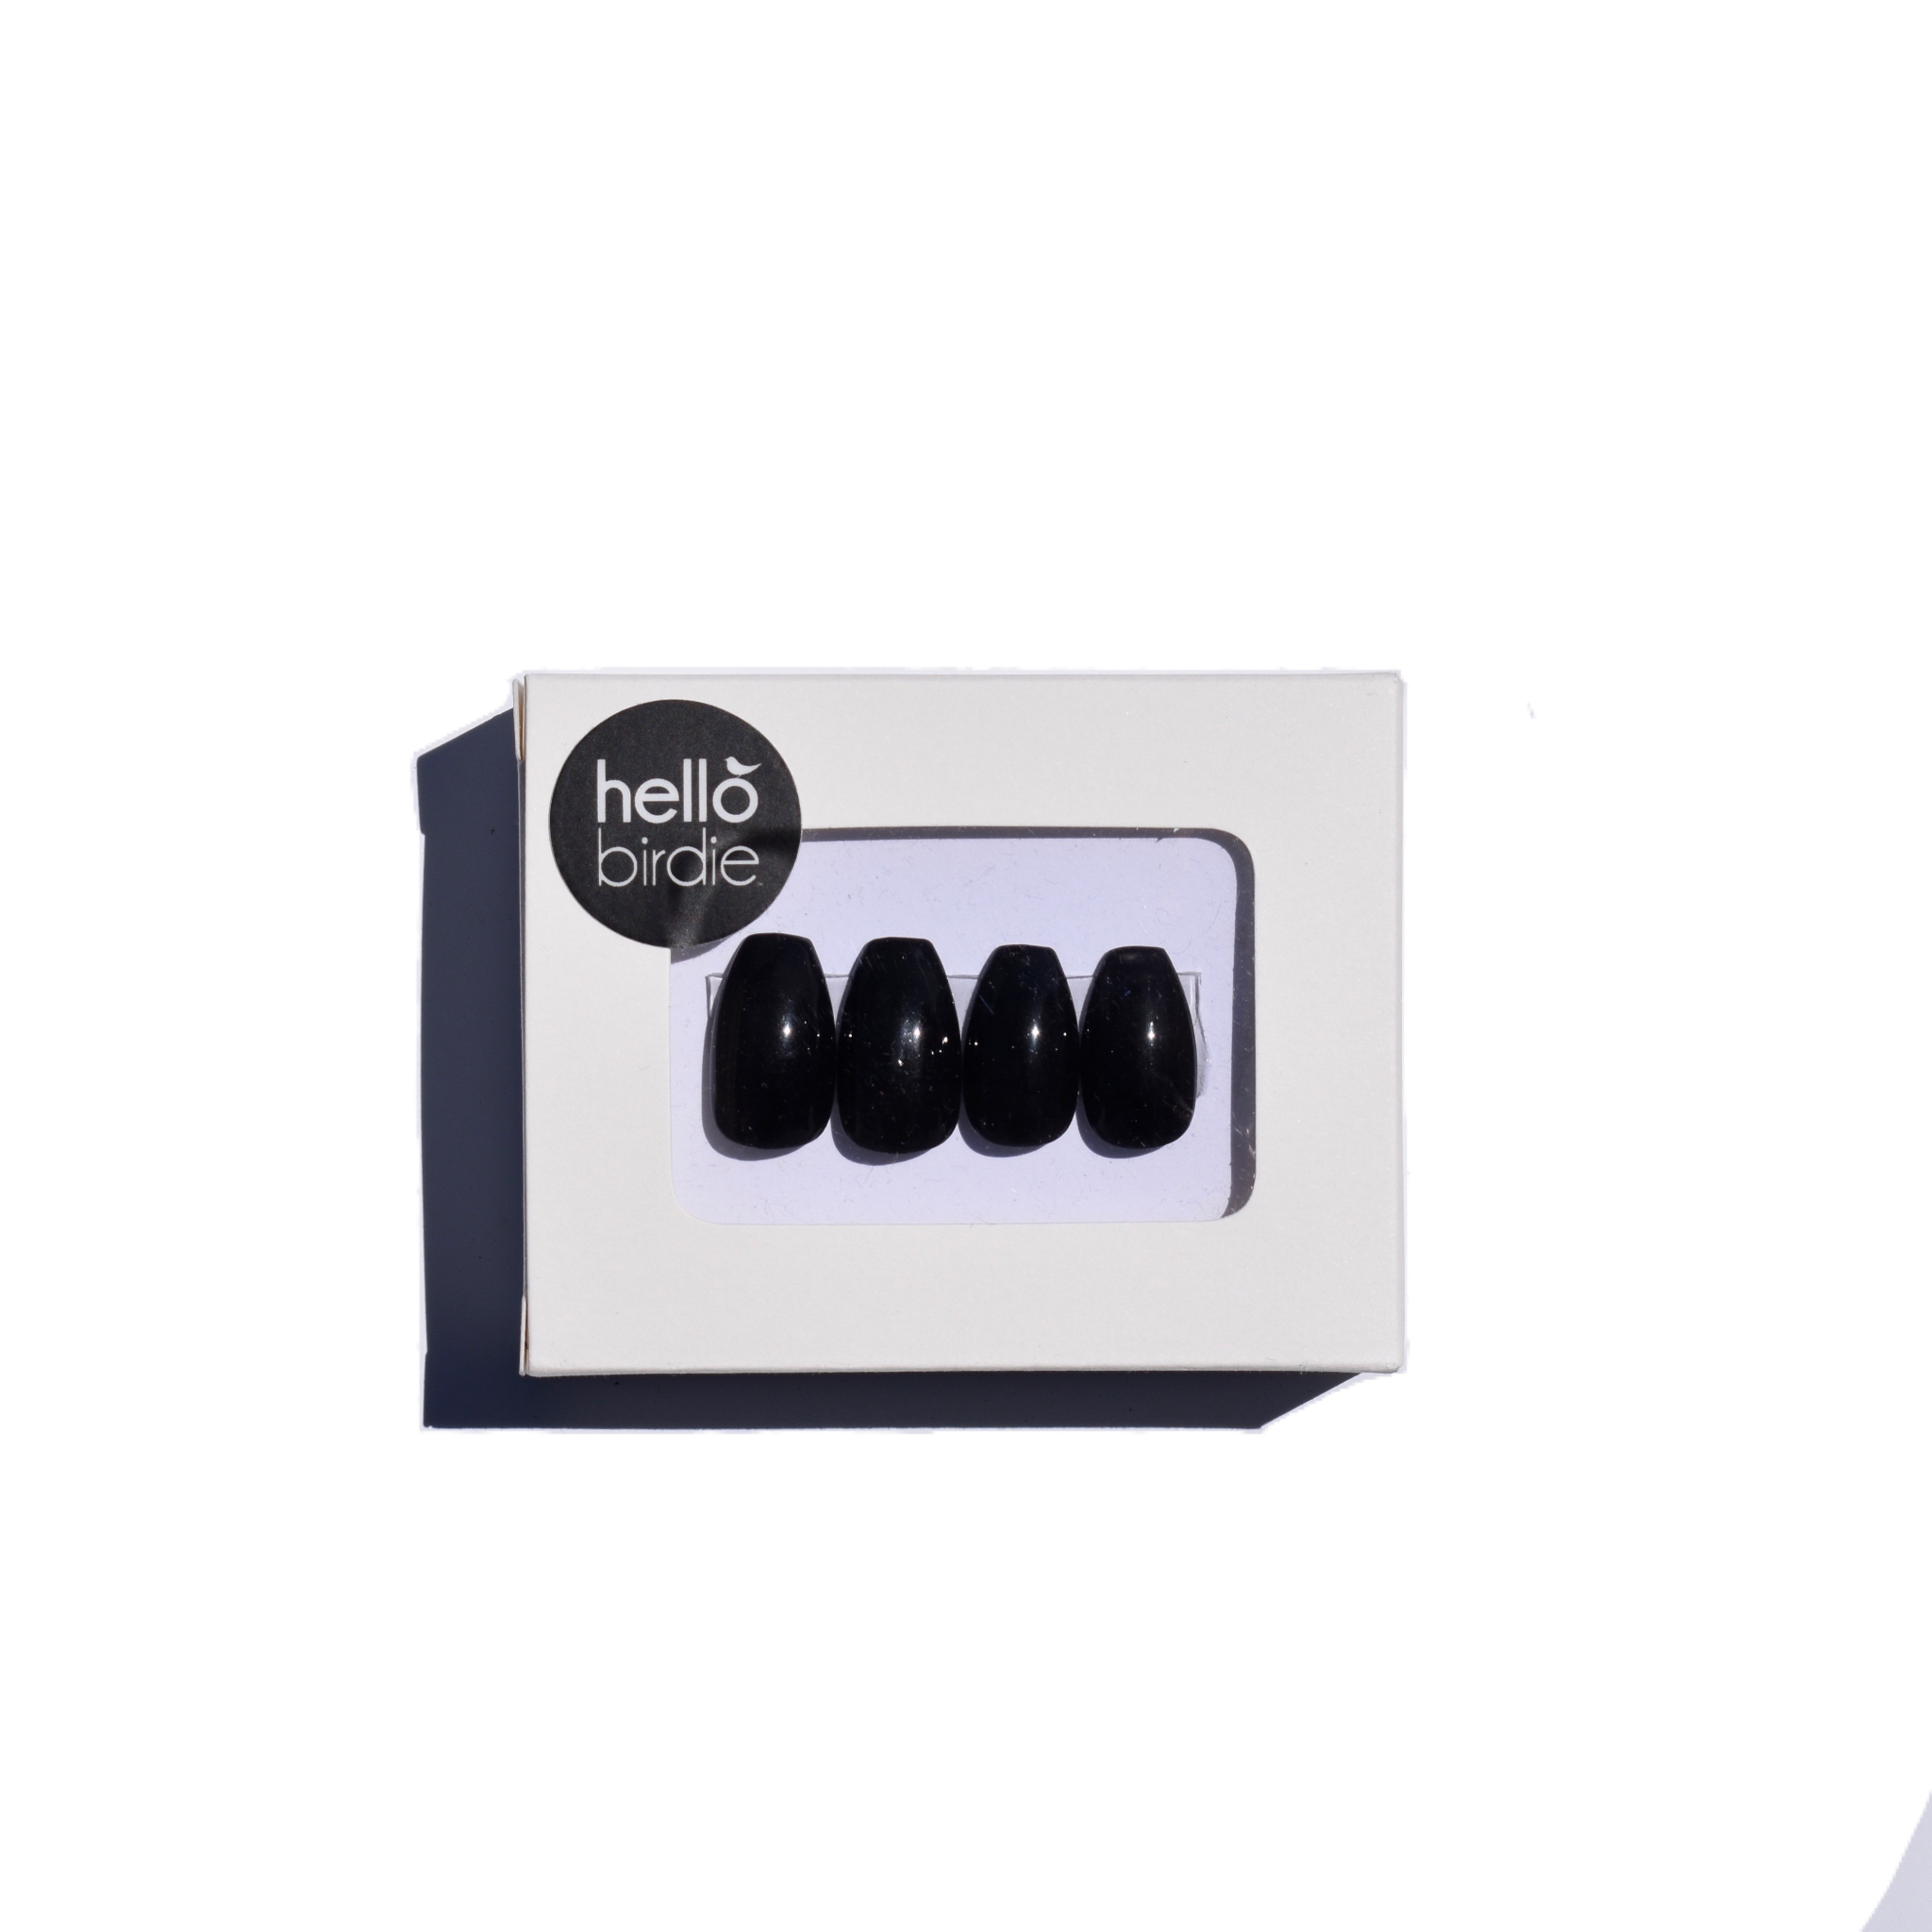 Four press-ons packaged in a rectangular box with a round  hello birdie logo on the top left corner.  A window with rounded corners allows you to view the black press ons in a gloss finish.